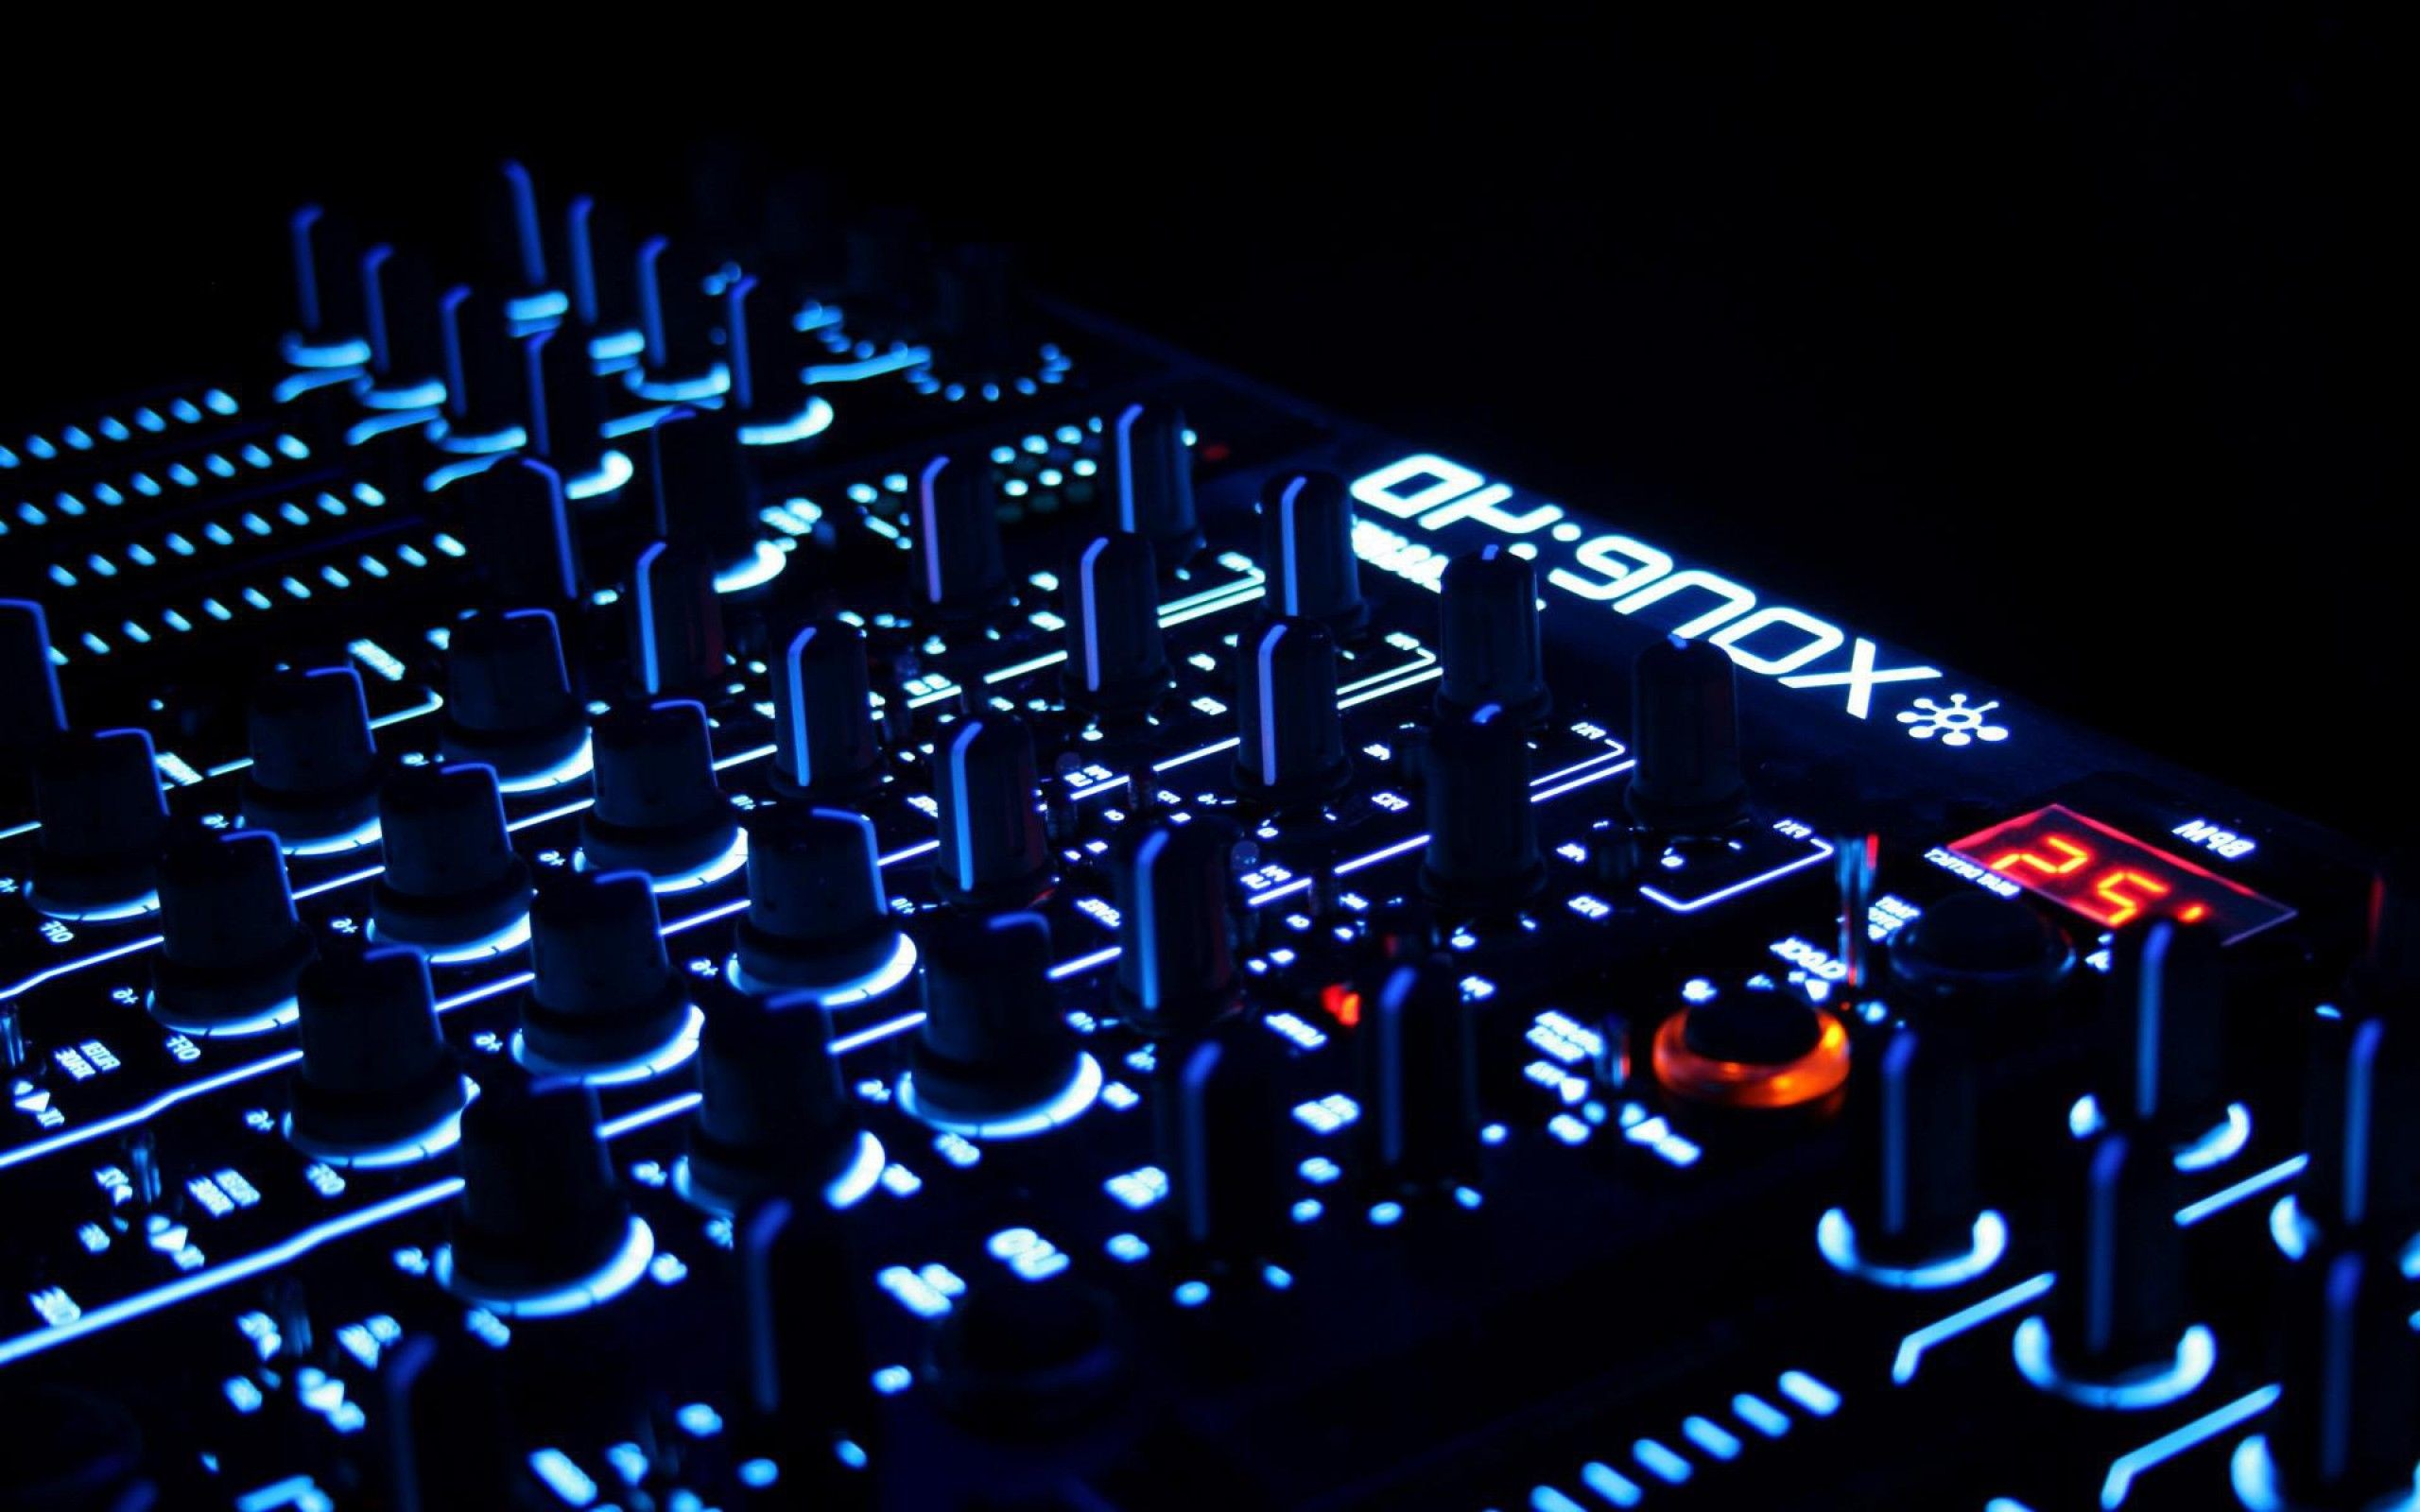 2560x1600 DJ Backgrounds Free Download - wallpaper.wiki